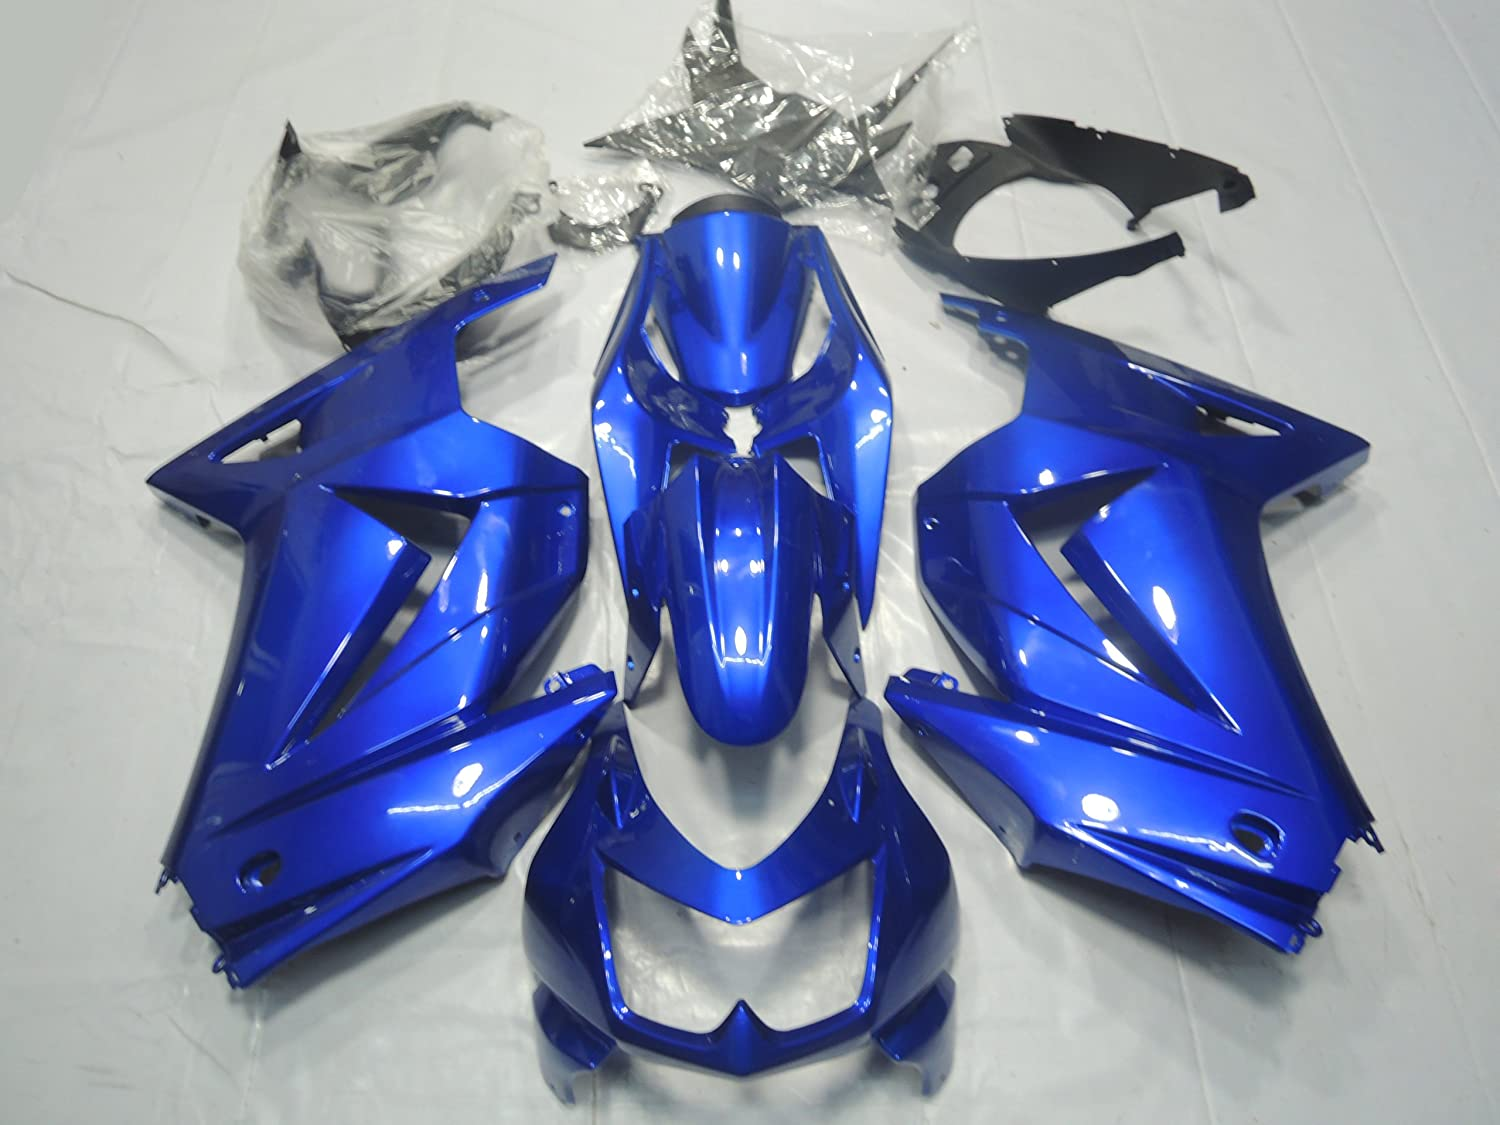 ZXMOTO ABS Motorcycle Bodywork Fairing Kit for Kawasaki Ninja 250R EX250 2008 2009 2010 2011 2012 Blue - (Pieces/kit: 15)